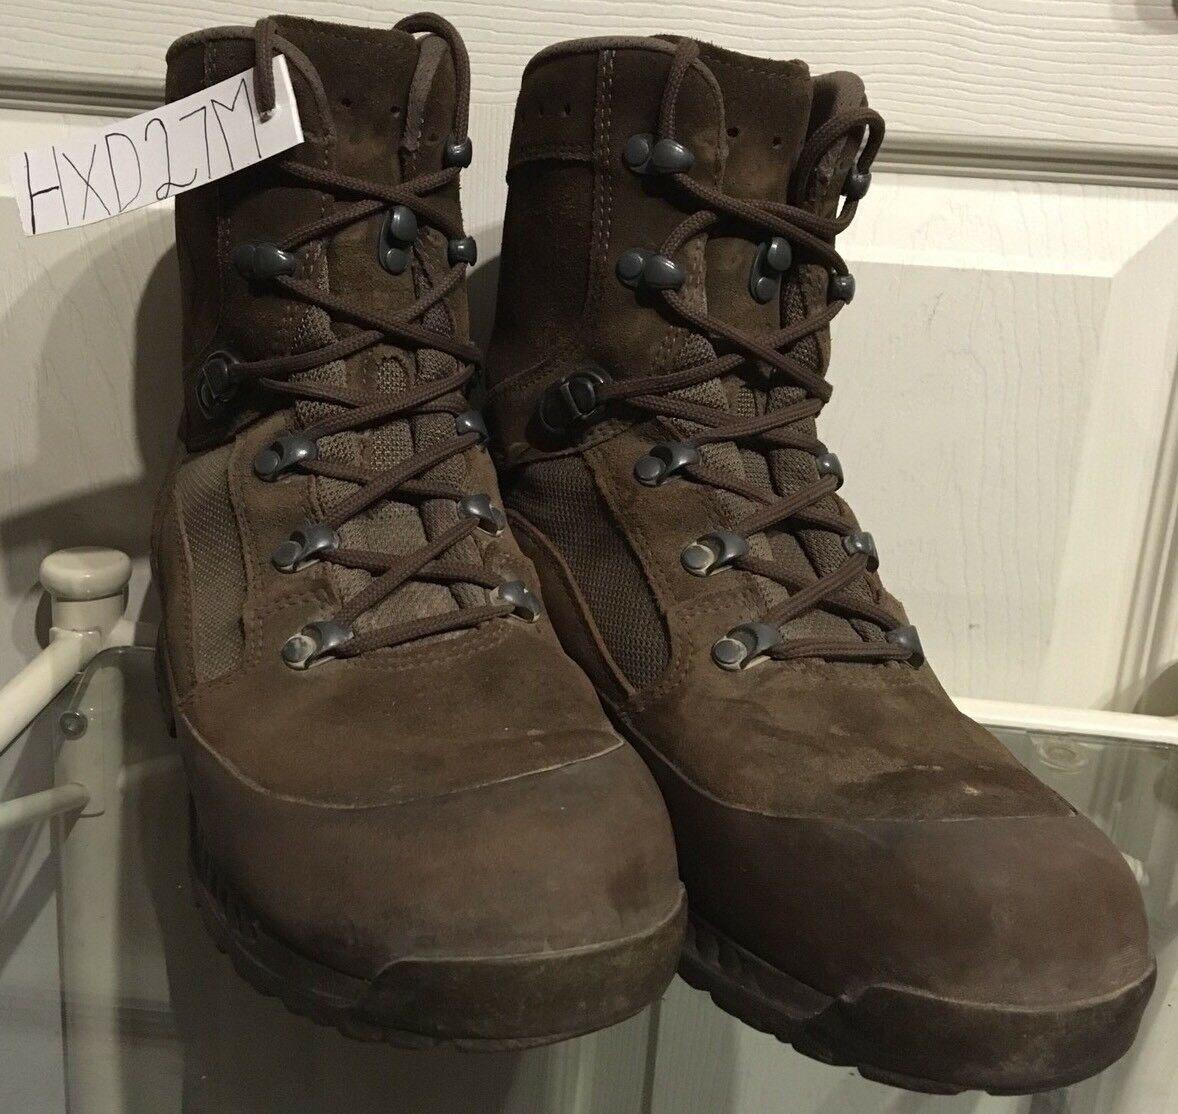 Haix Desert Brown Suede MTP Army Issue Female Combat Boots 7M HXD27M